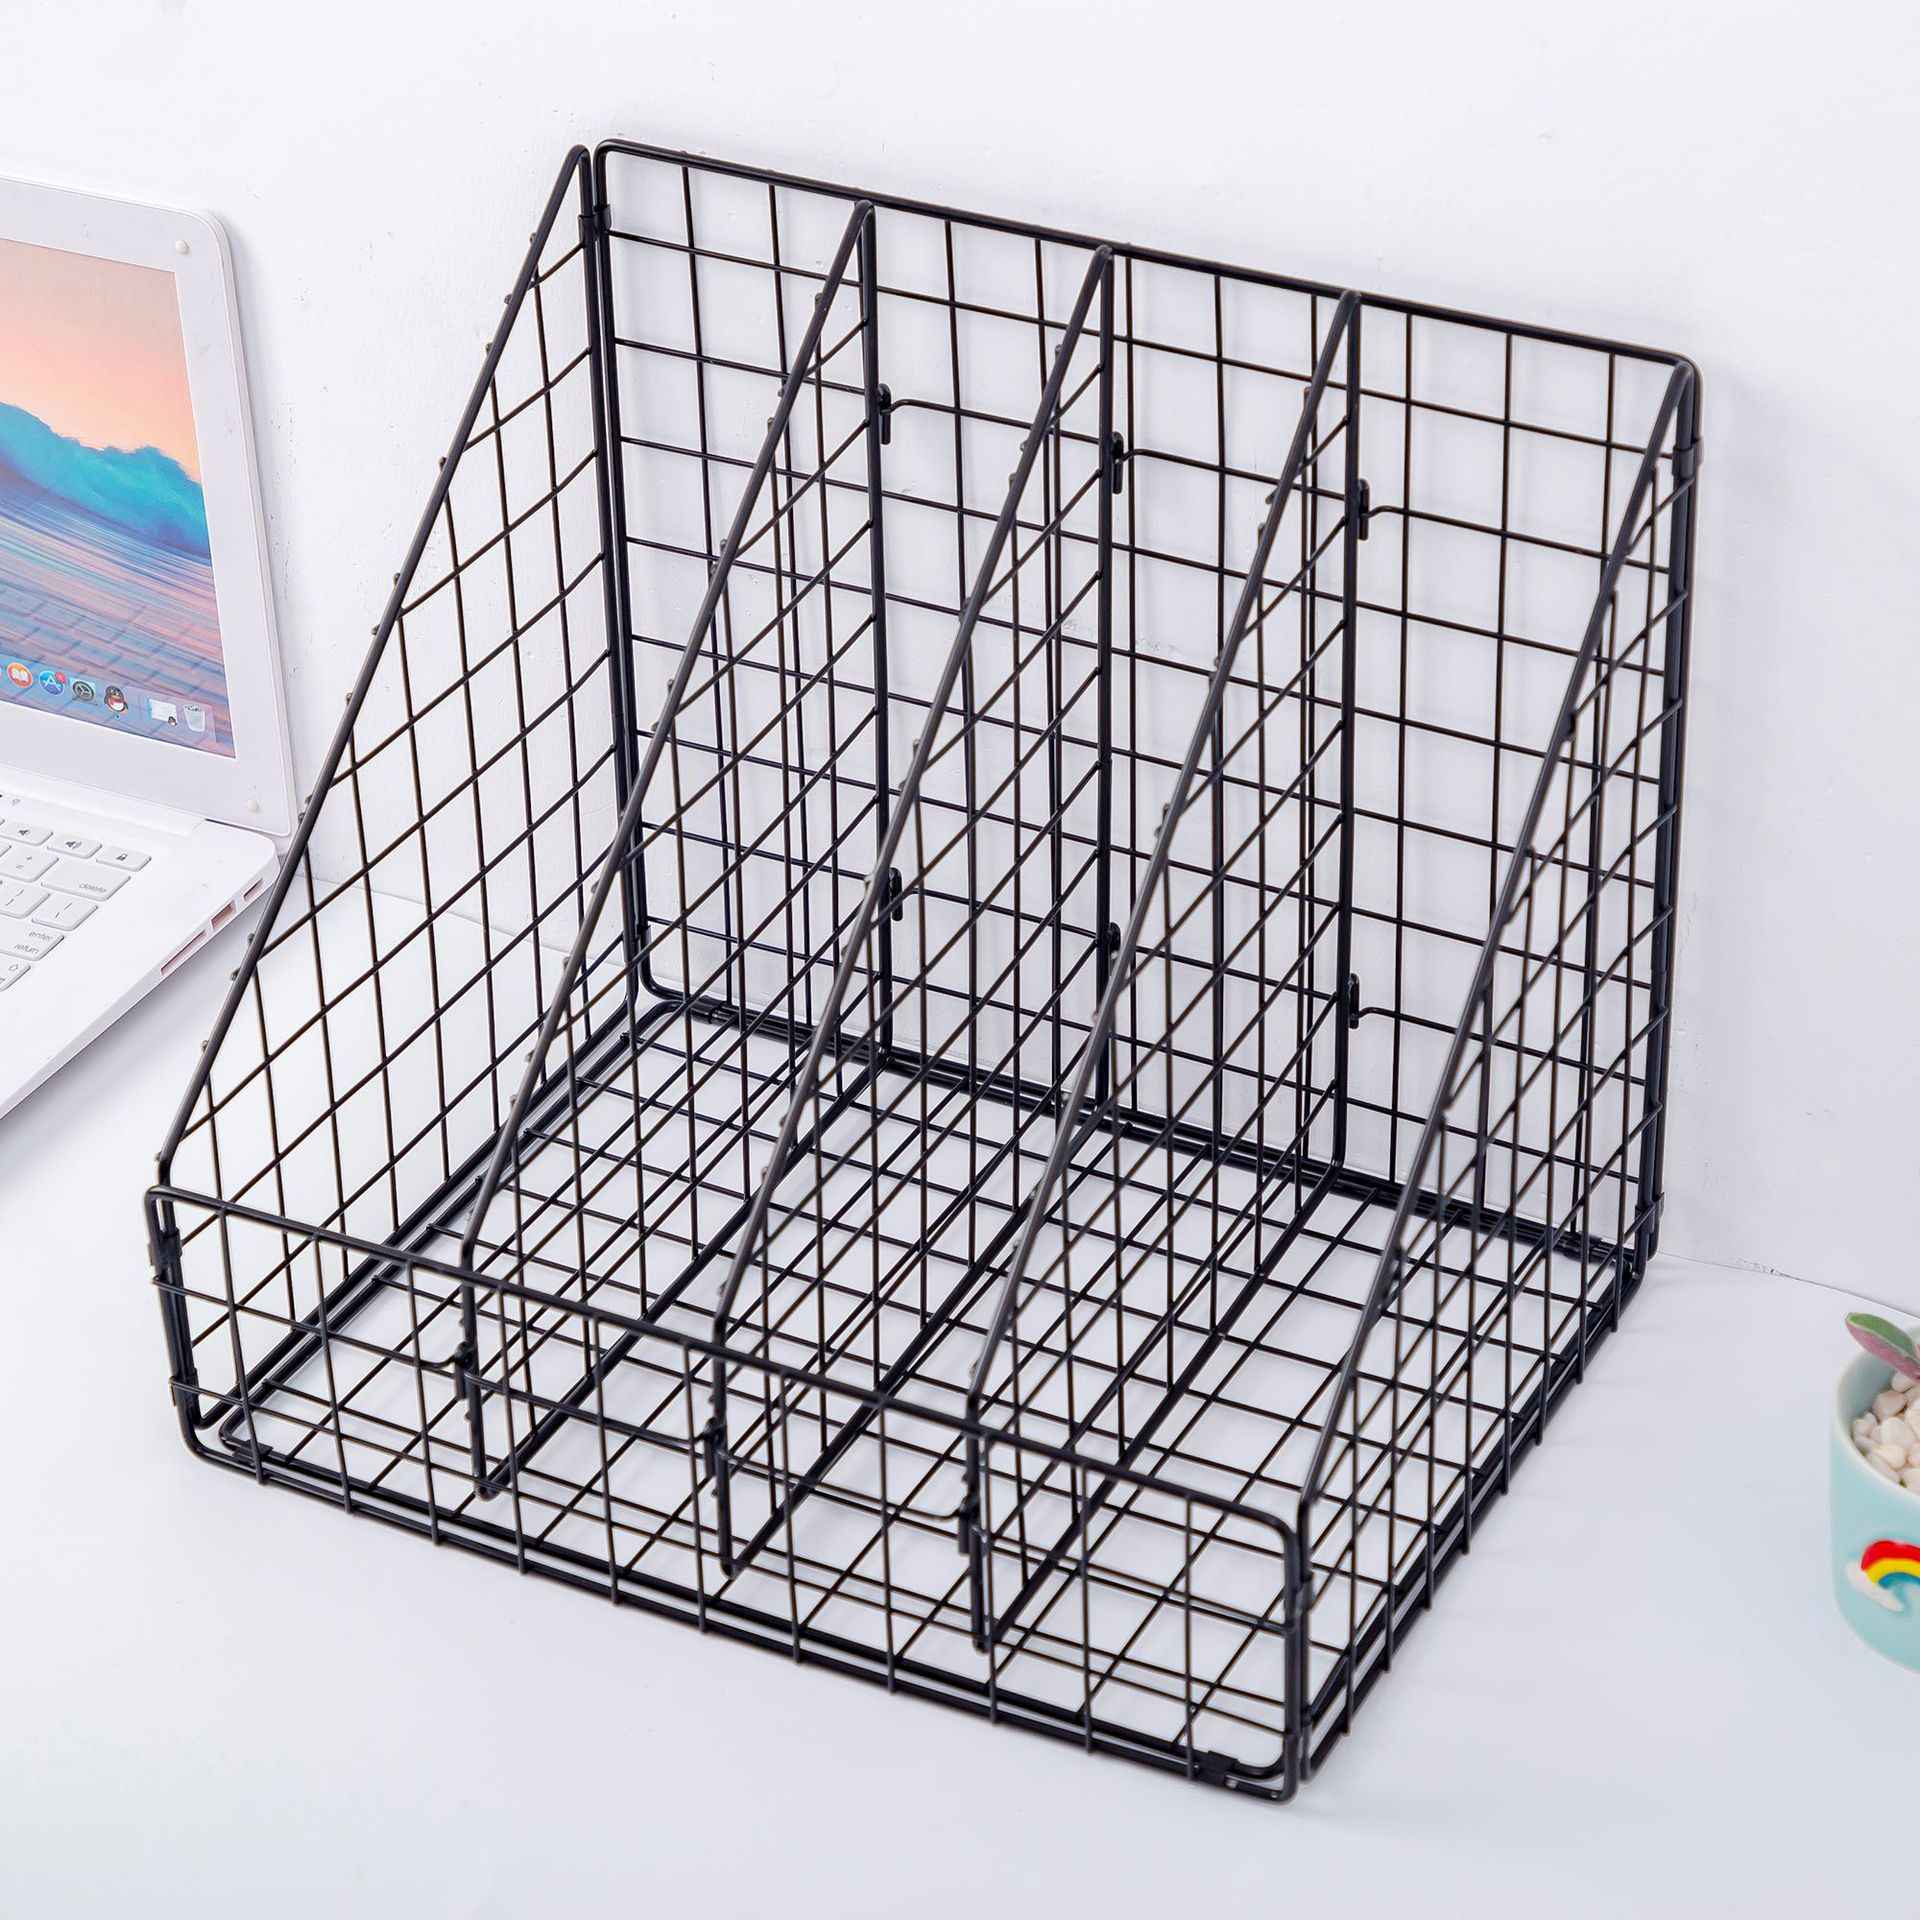 File Magazine Racks Tray Book Stand YSNBM Desktop File Holder 3 Layers Book Stand Hollow Storage Box Blue Magazine File Holder,Mail,Newspaper Desk Organizer Office Stationery Bookends